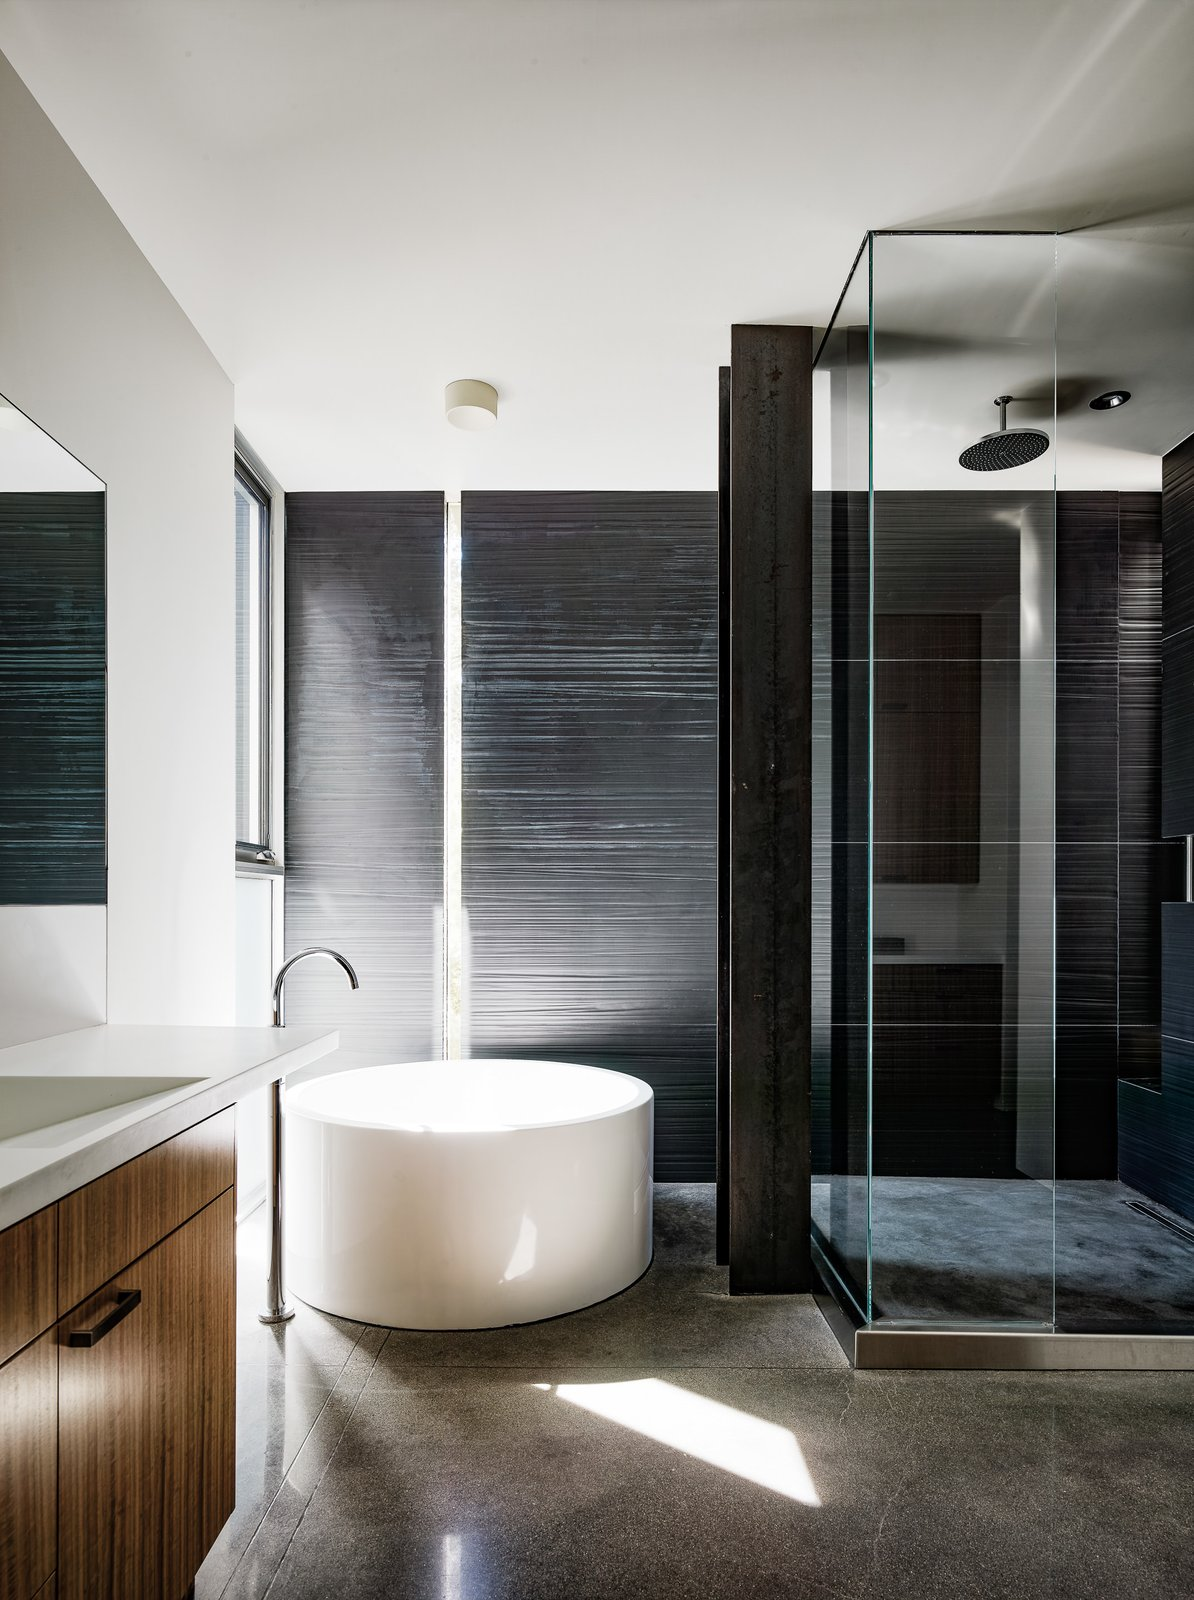 Bath Room, Concrete Floor, Ceiling Lighting, Drop In Sink, Corner Shower, and Soaking Tub Texture, light, and a pureness of materiality turn the bathroom into a balanced composition.  Photo 12 of 18 in An Uplifting Lake Tahoe Retreat Uses Light as a Building Material